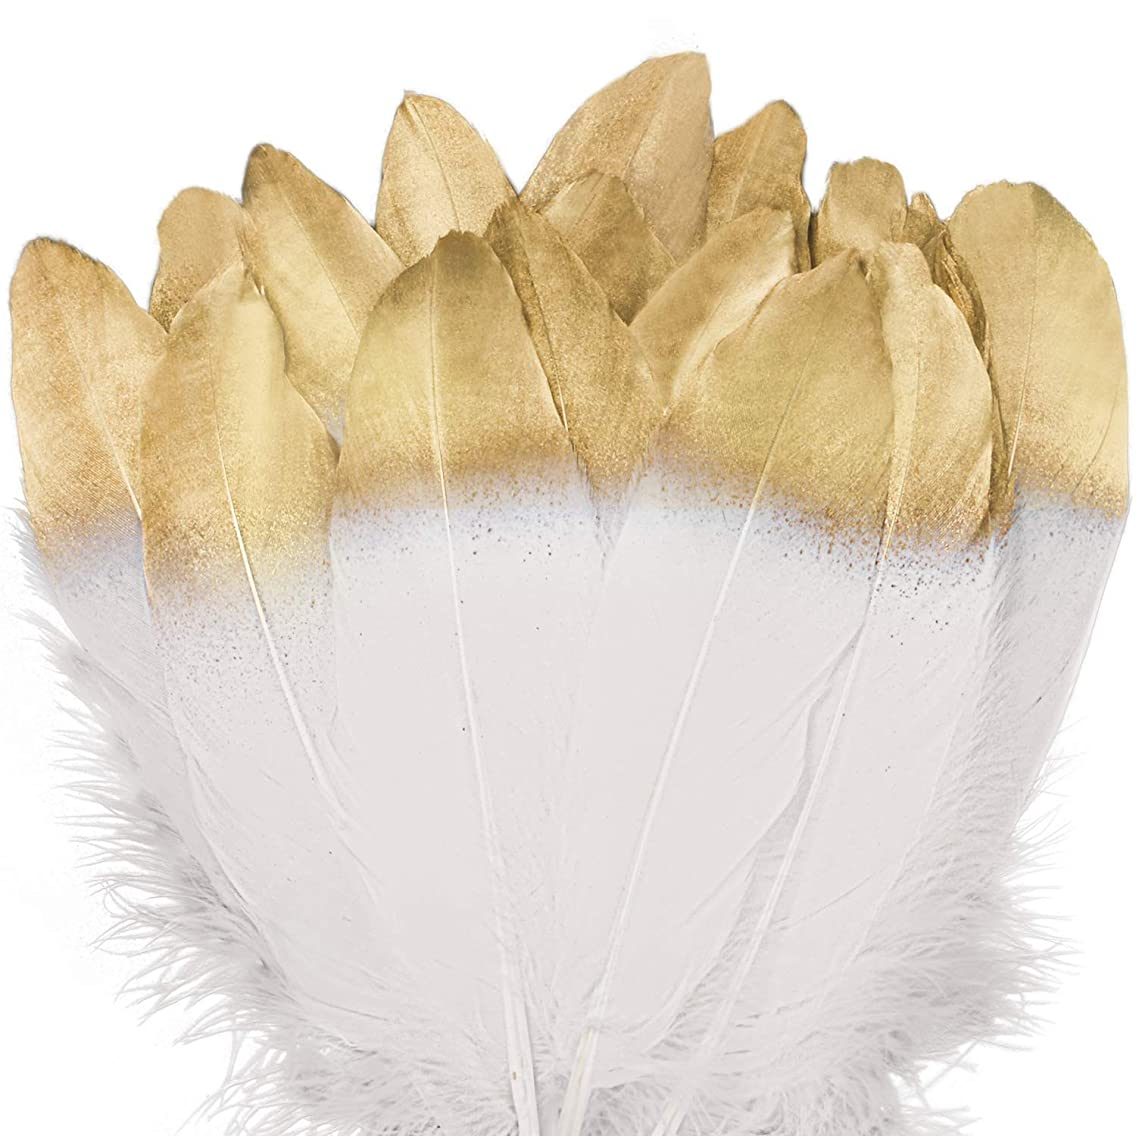 WELLGO 50 Pcs Gold Dipped White Glitter Feather Goose Real Feather Christmas Decoration Natural Craft Art Soft Native Feather Accessories for Christmas, DIY, Party, Wedding, Dream Catcher (50pcs)